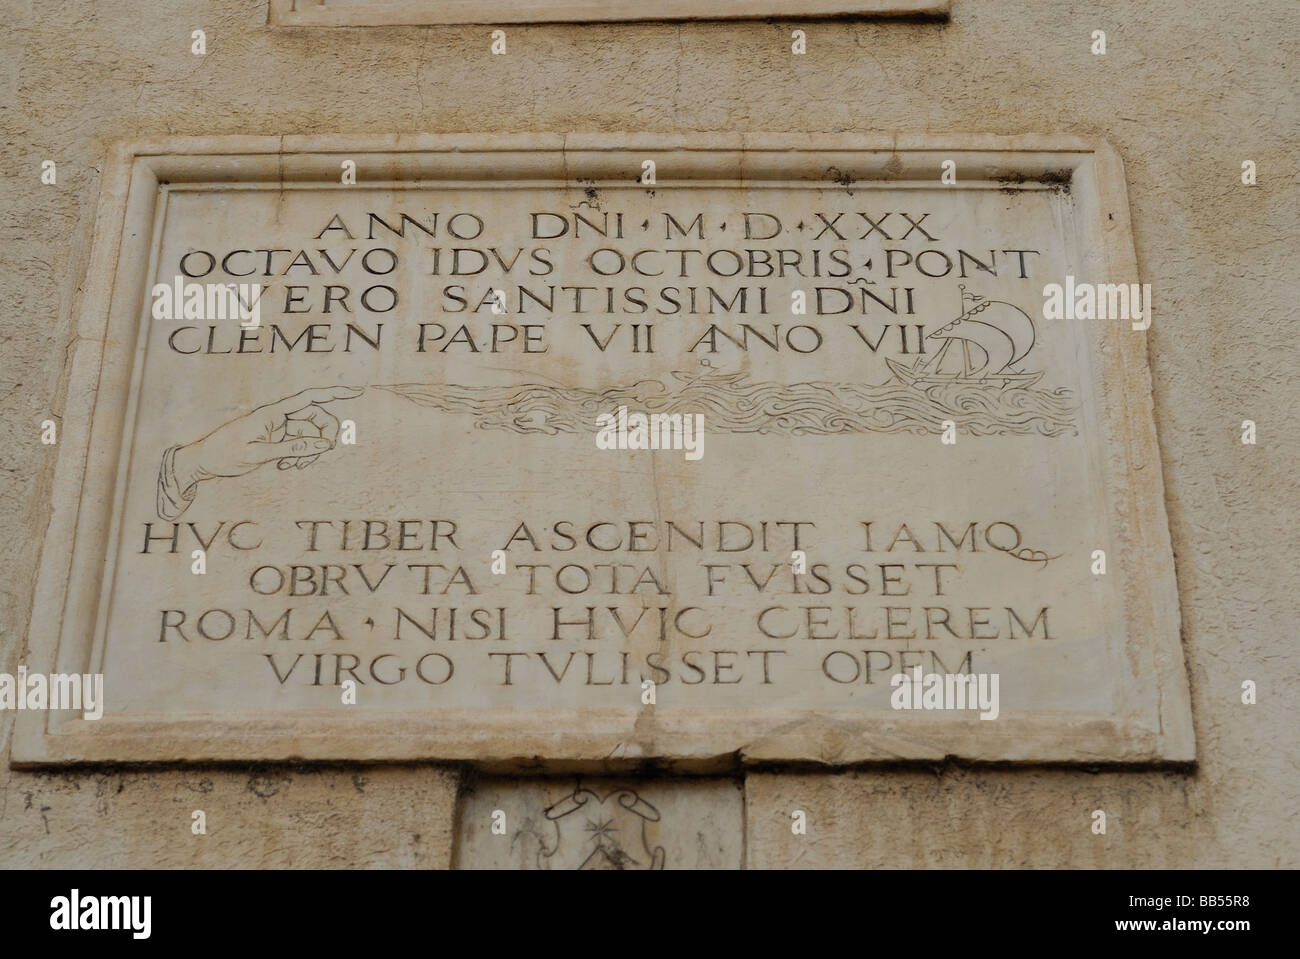 S. Maria della Minerva Church, Rome, Italy. On the church wall the indications about the ancient floods of Tiber - Stock Image